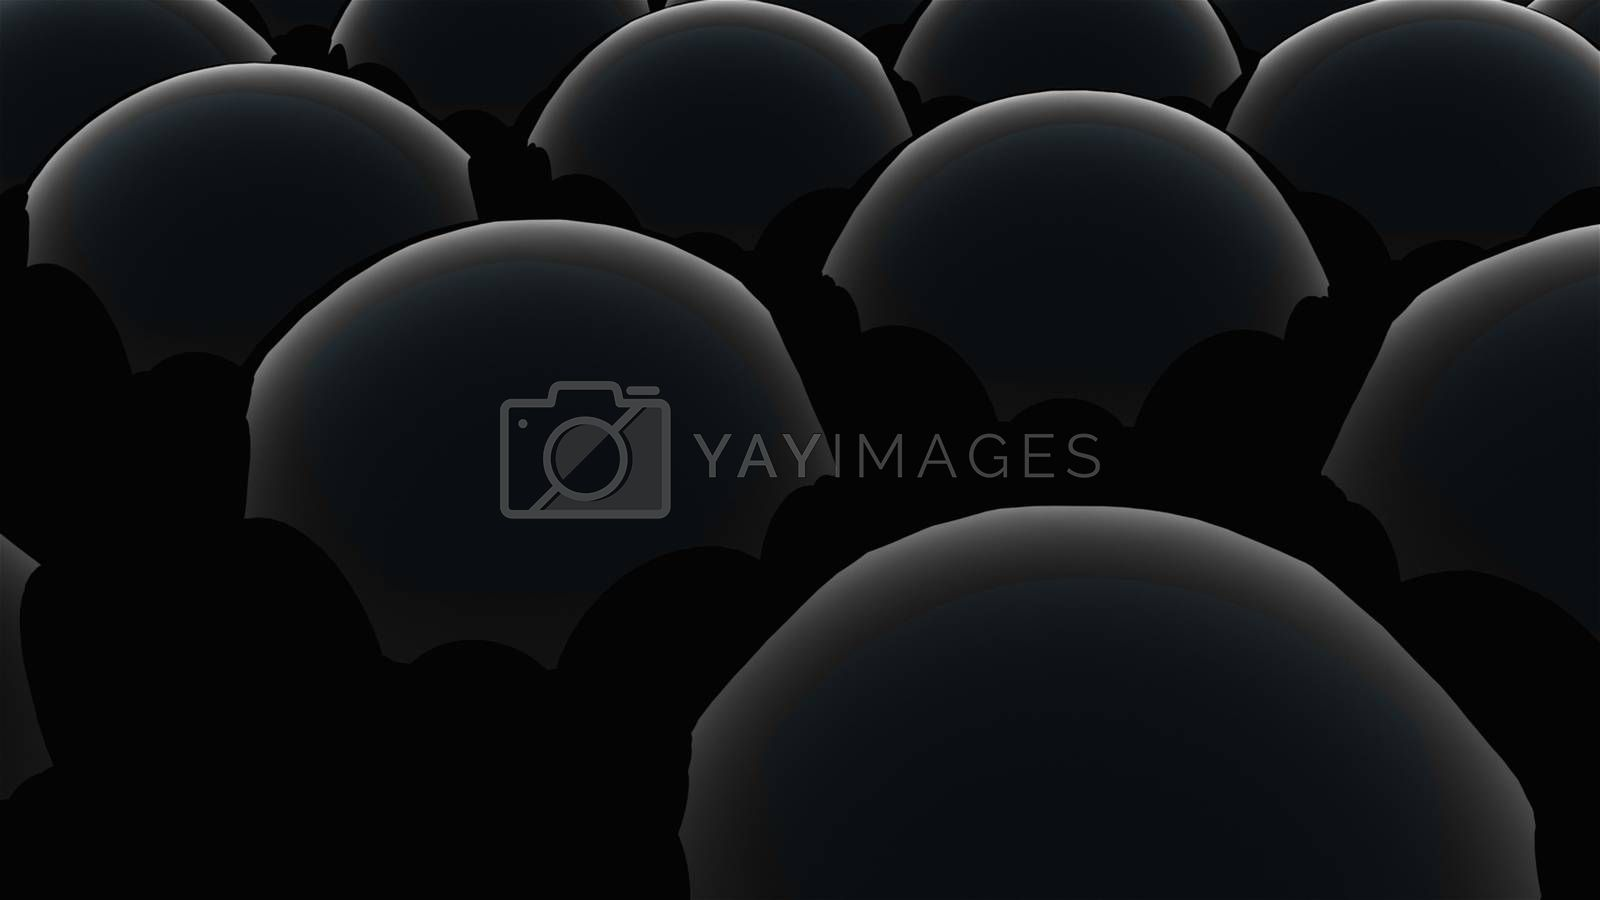 Wavy surface of many black spheres. 3d rendering modern background, computer generated